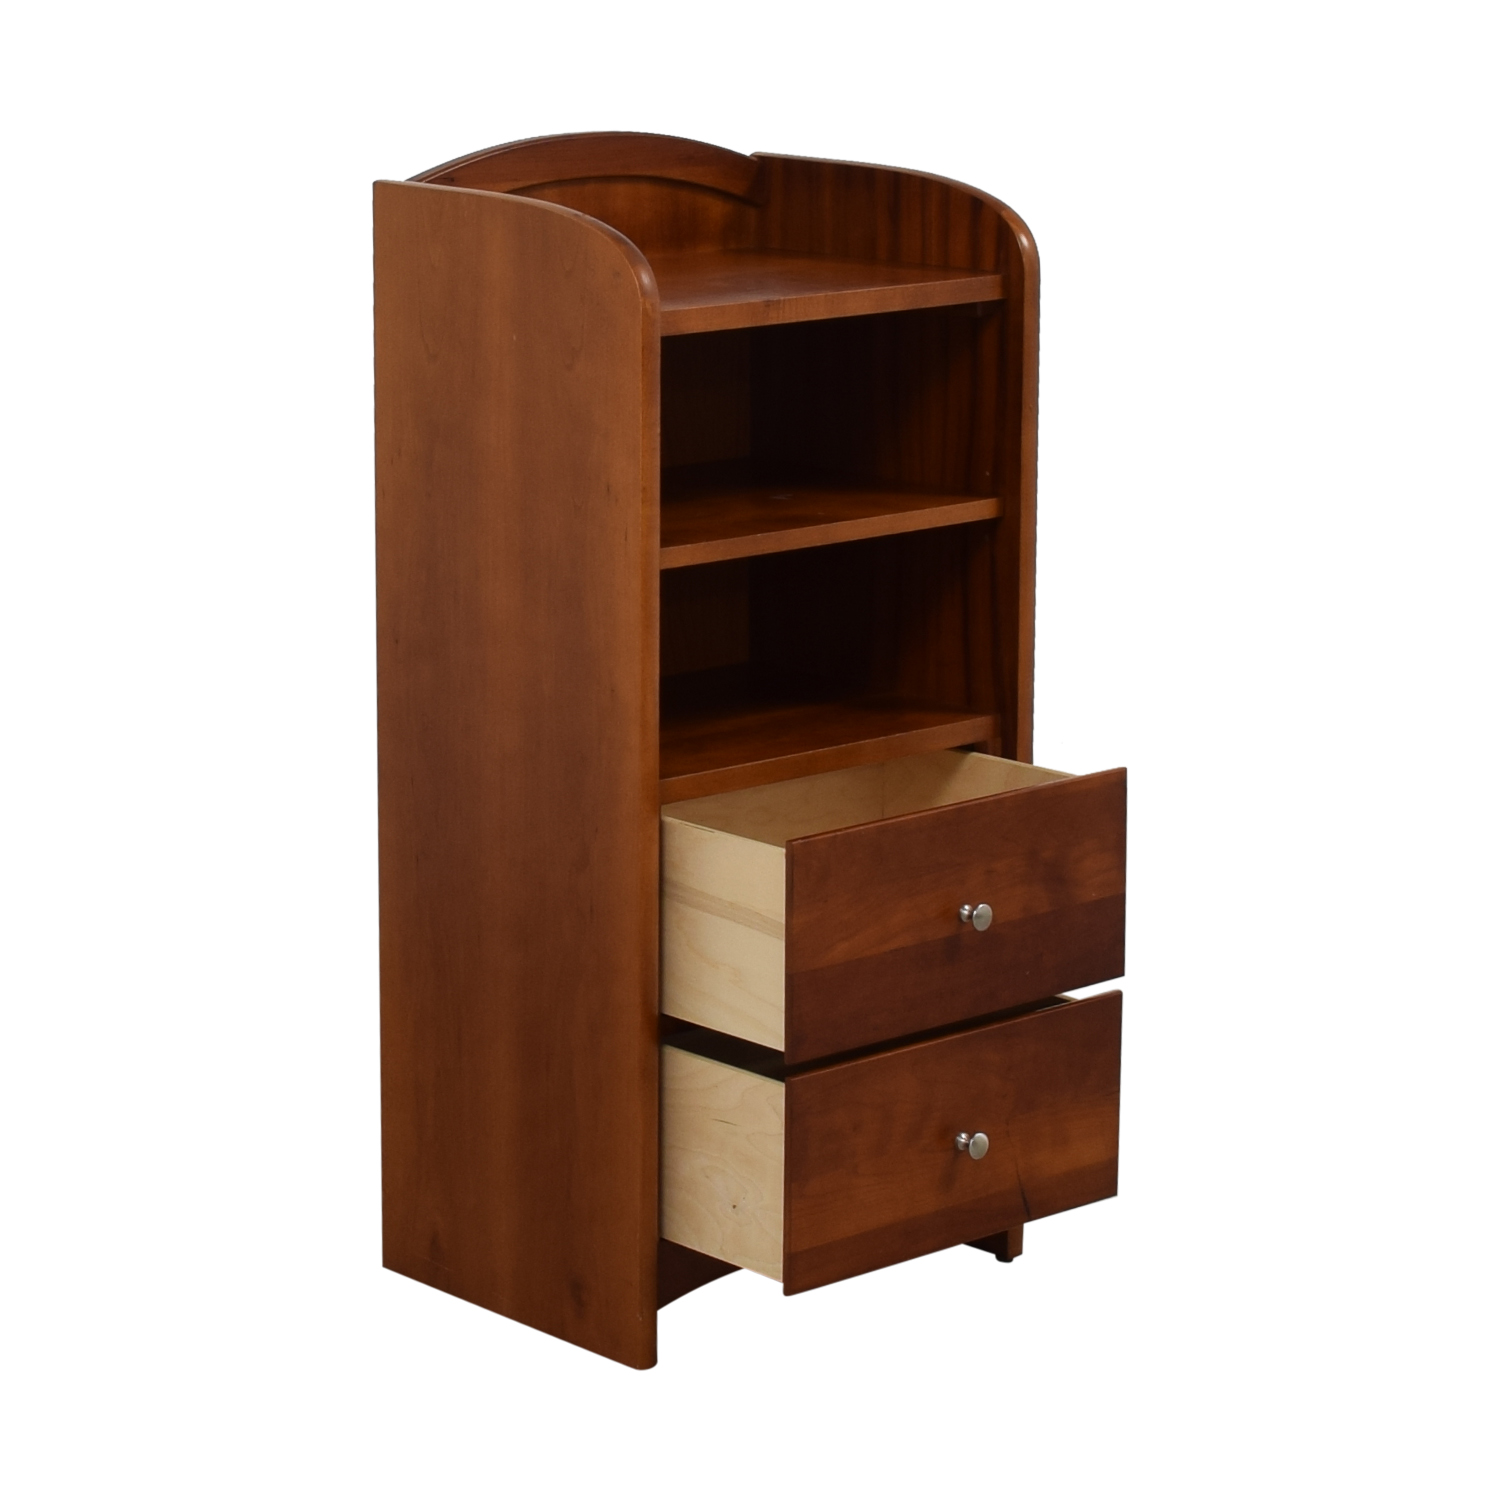 shop Stanley Furniture Stanley Furniture Young America Collection Short Cabinet online